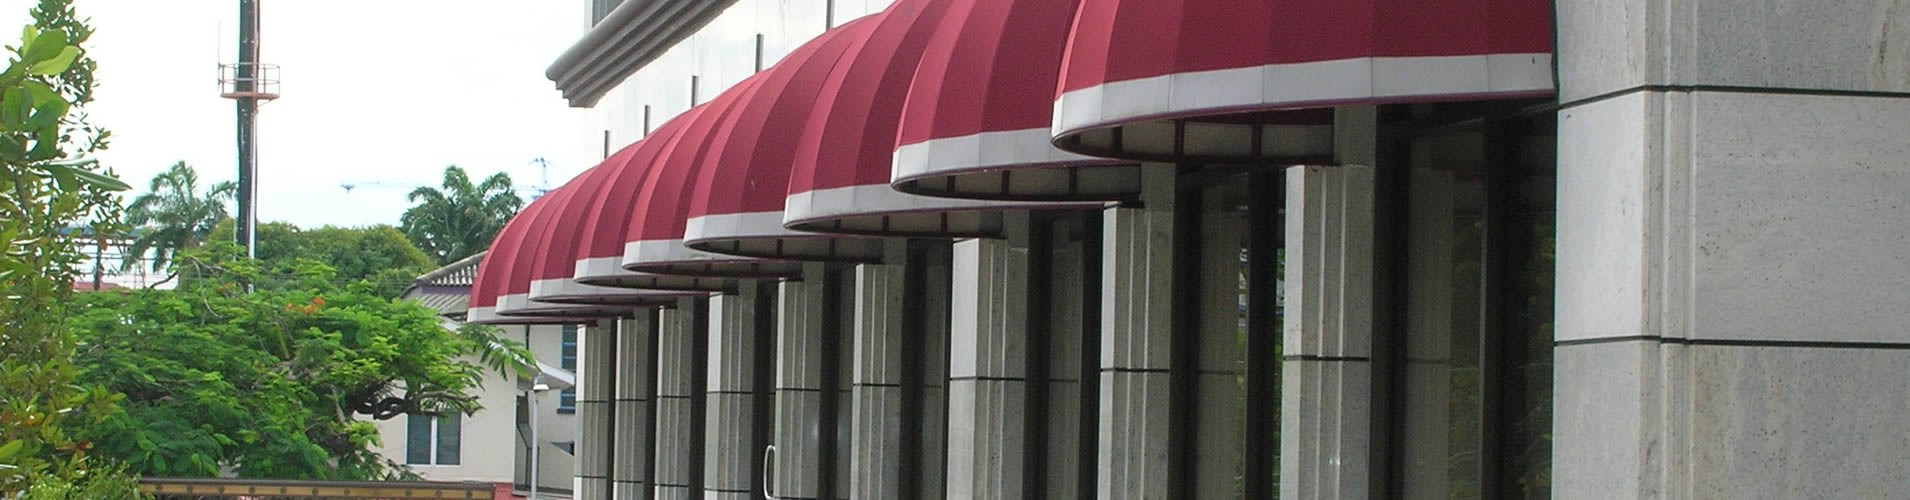 Commercial Awnings St Lucie Martin Amp Broward County